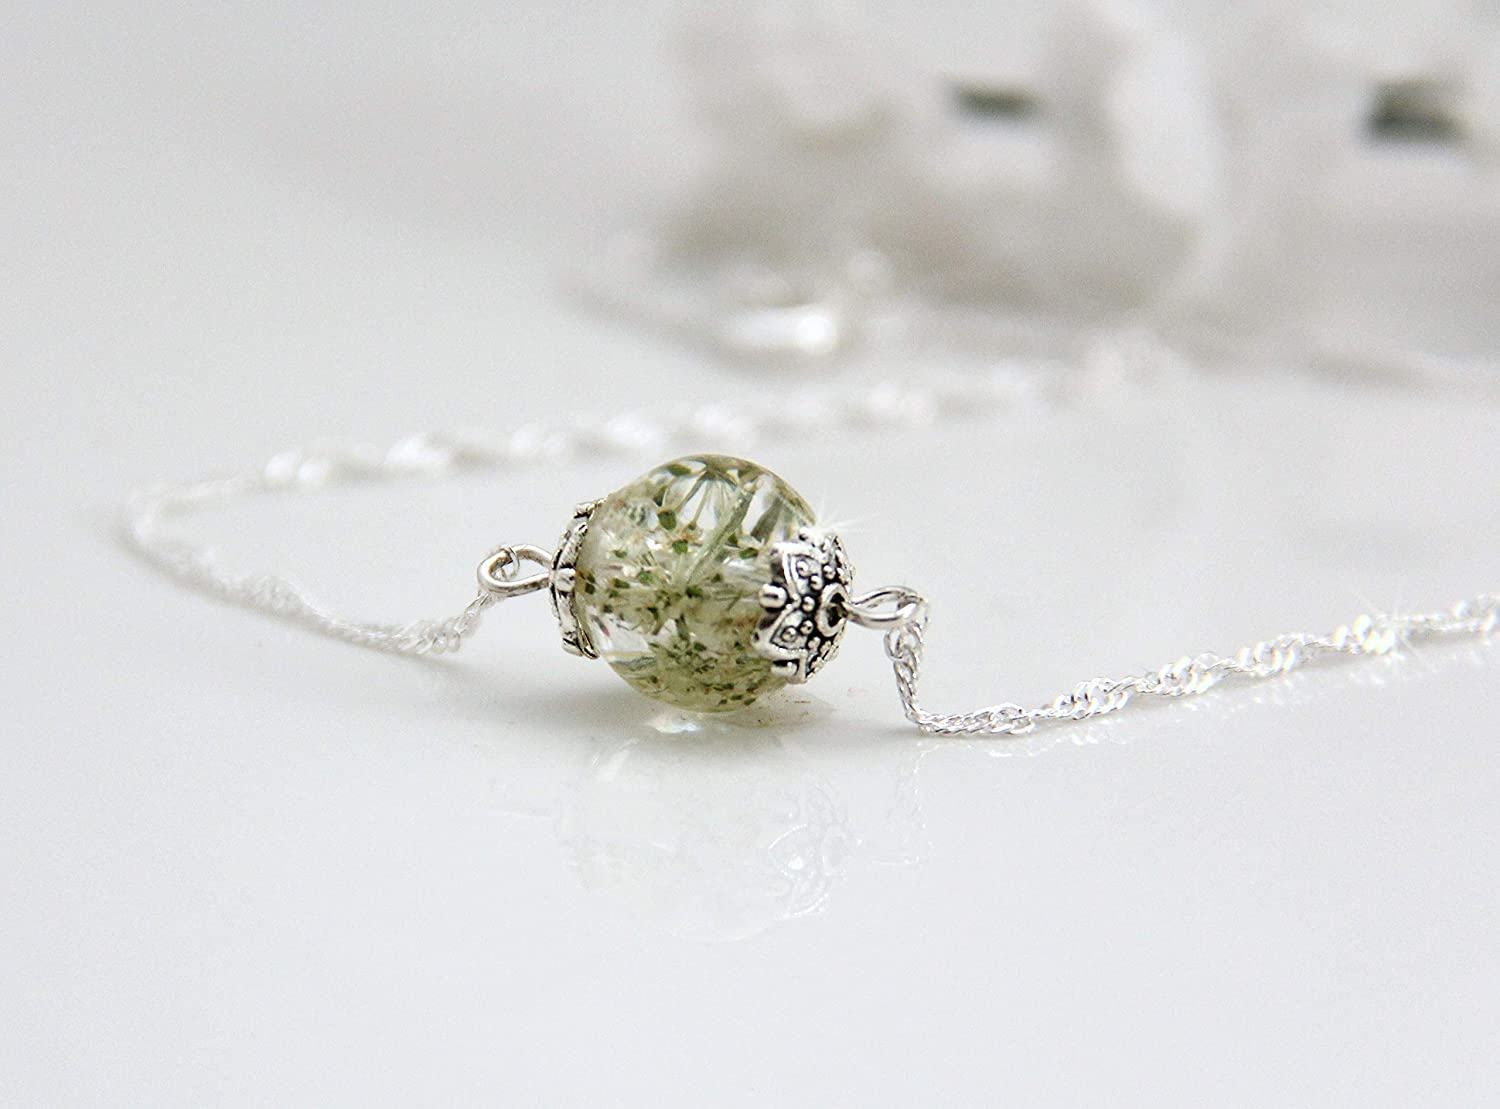 Single Bead Handmade Sterling Silver Resin Queen Anne's Lace Necklace